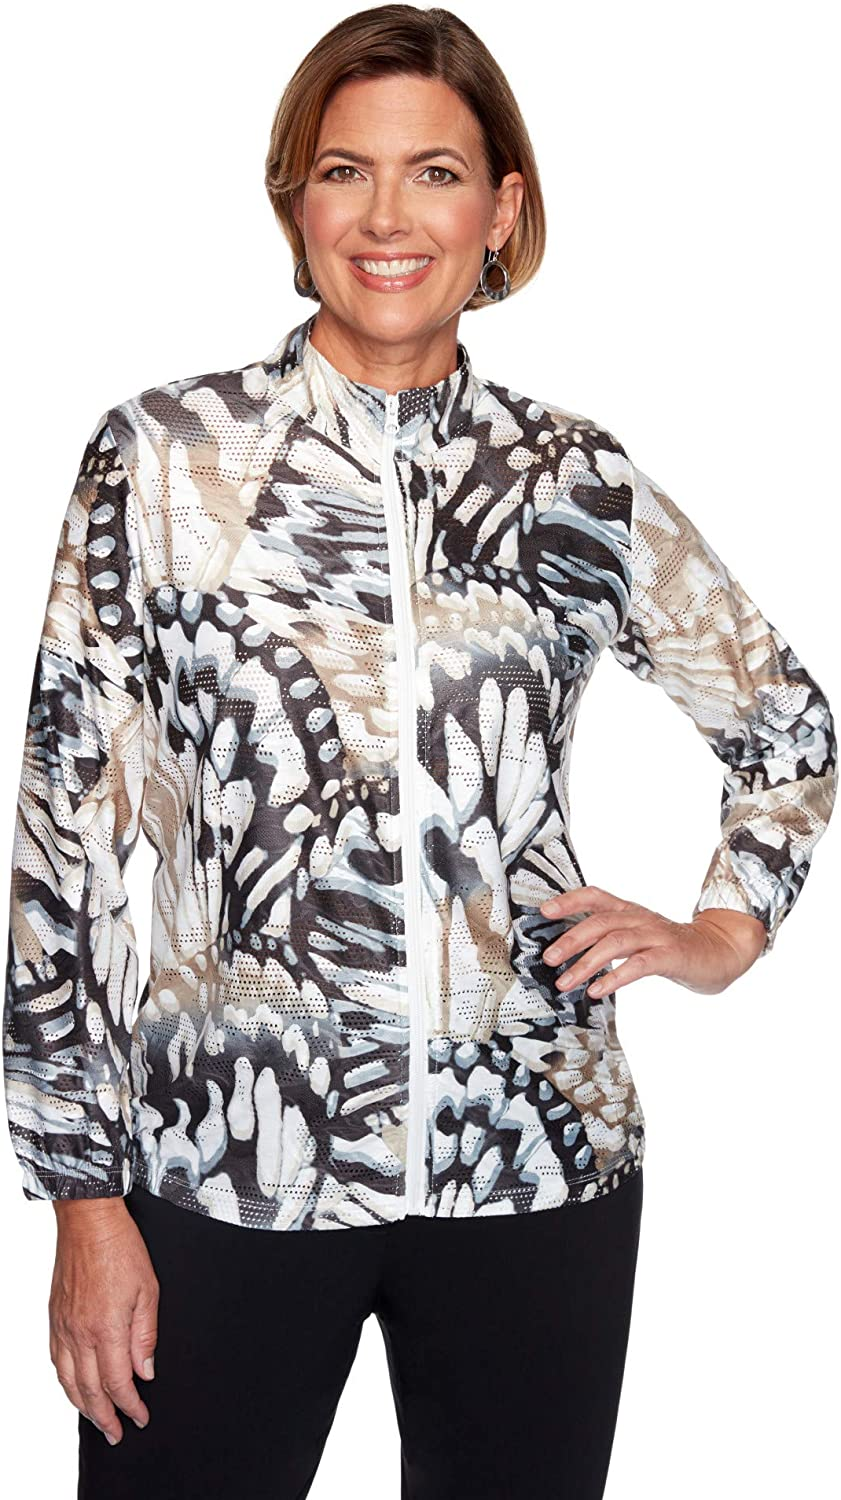 Alfred Dunner Women's Classics Abstract Butterfly Jacket: Clothing